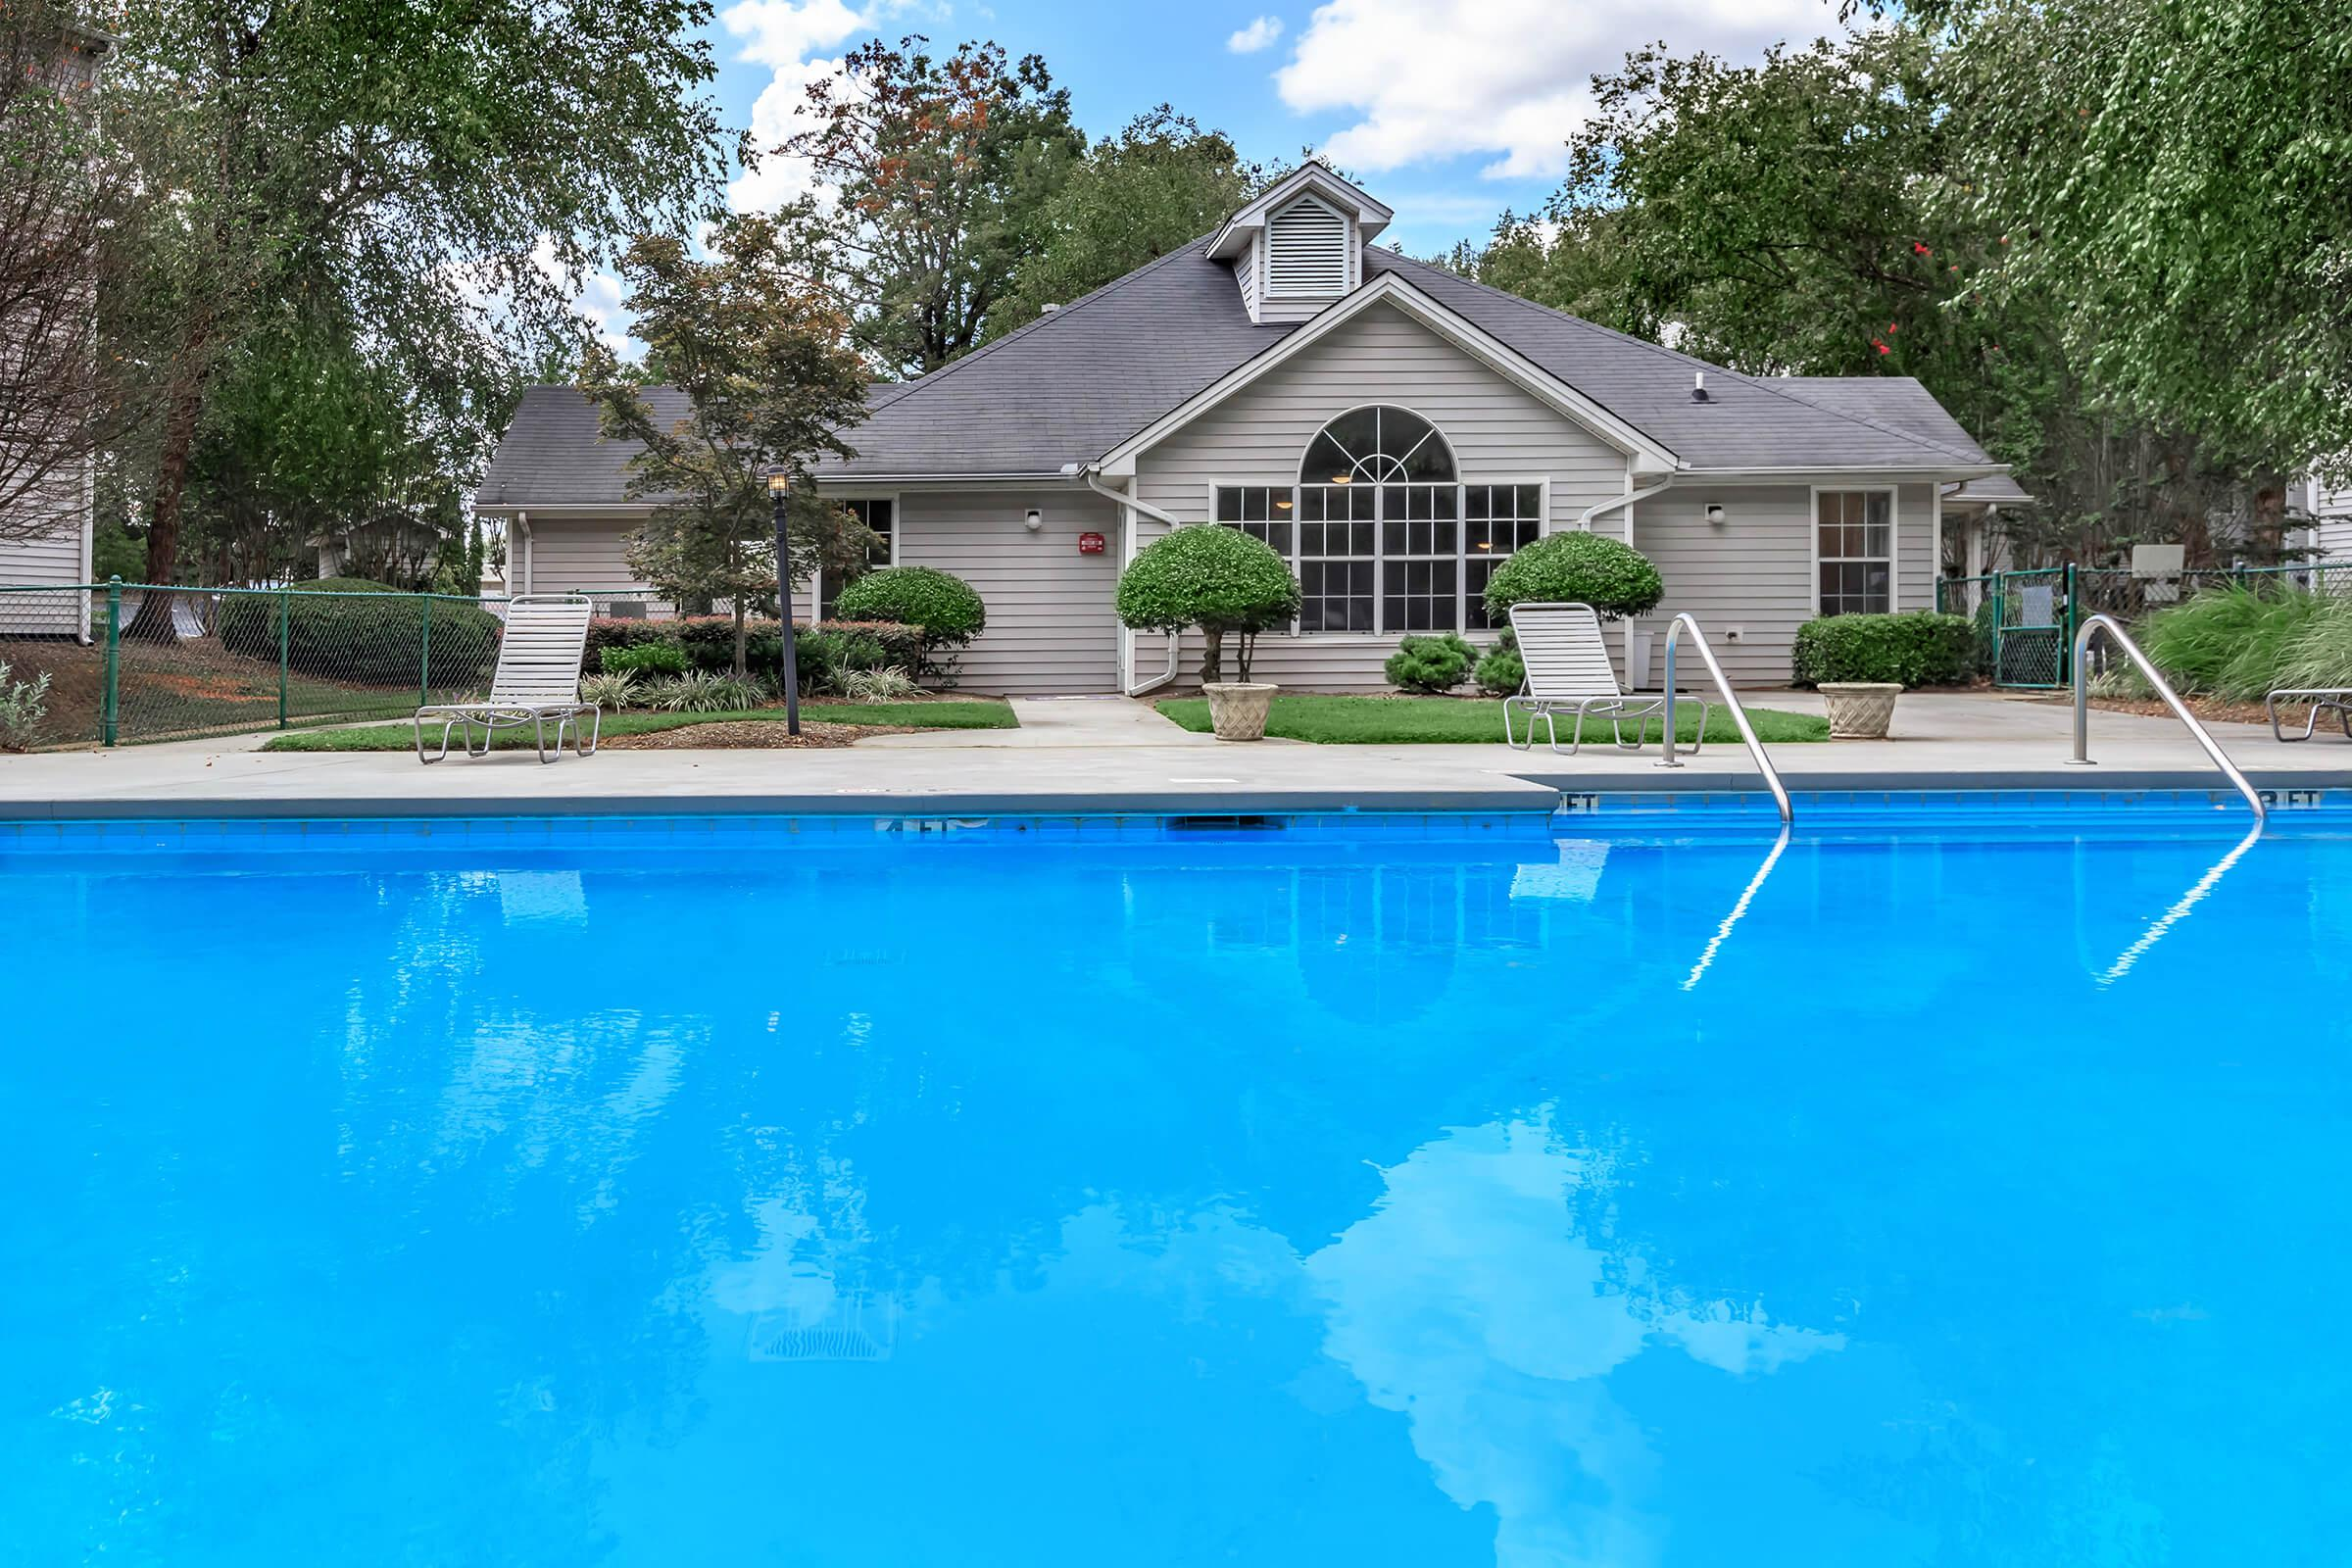 a blue pool of water in front of a house